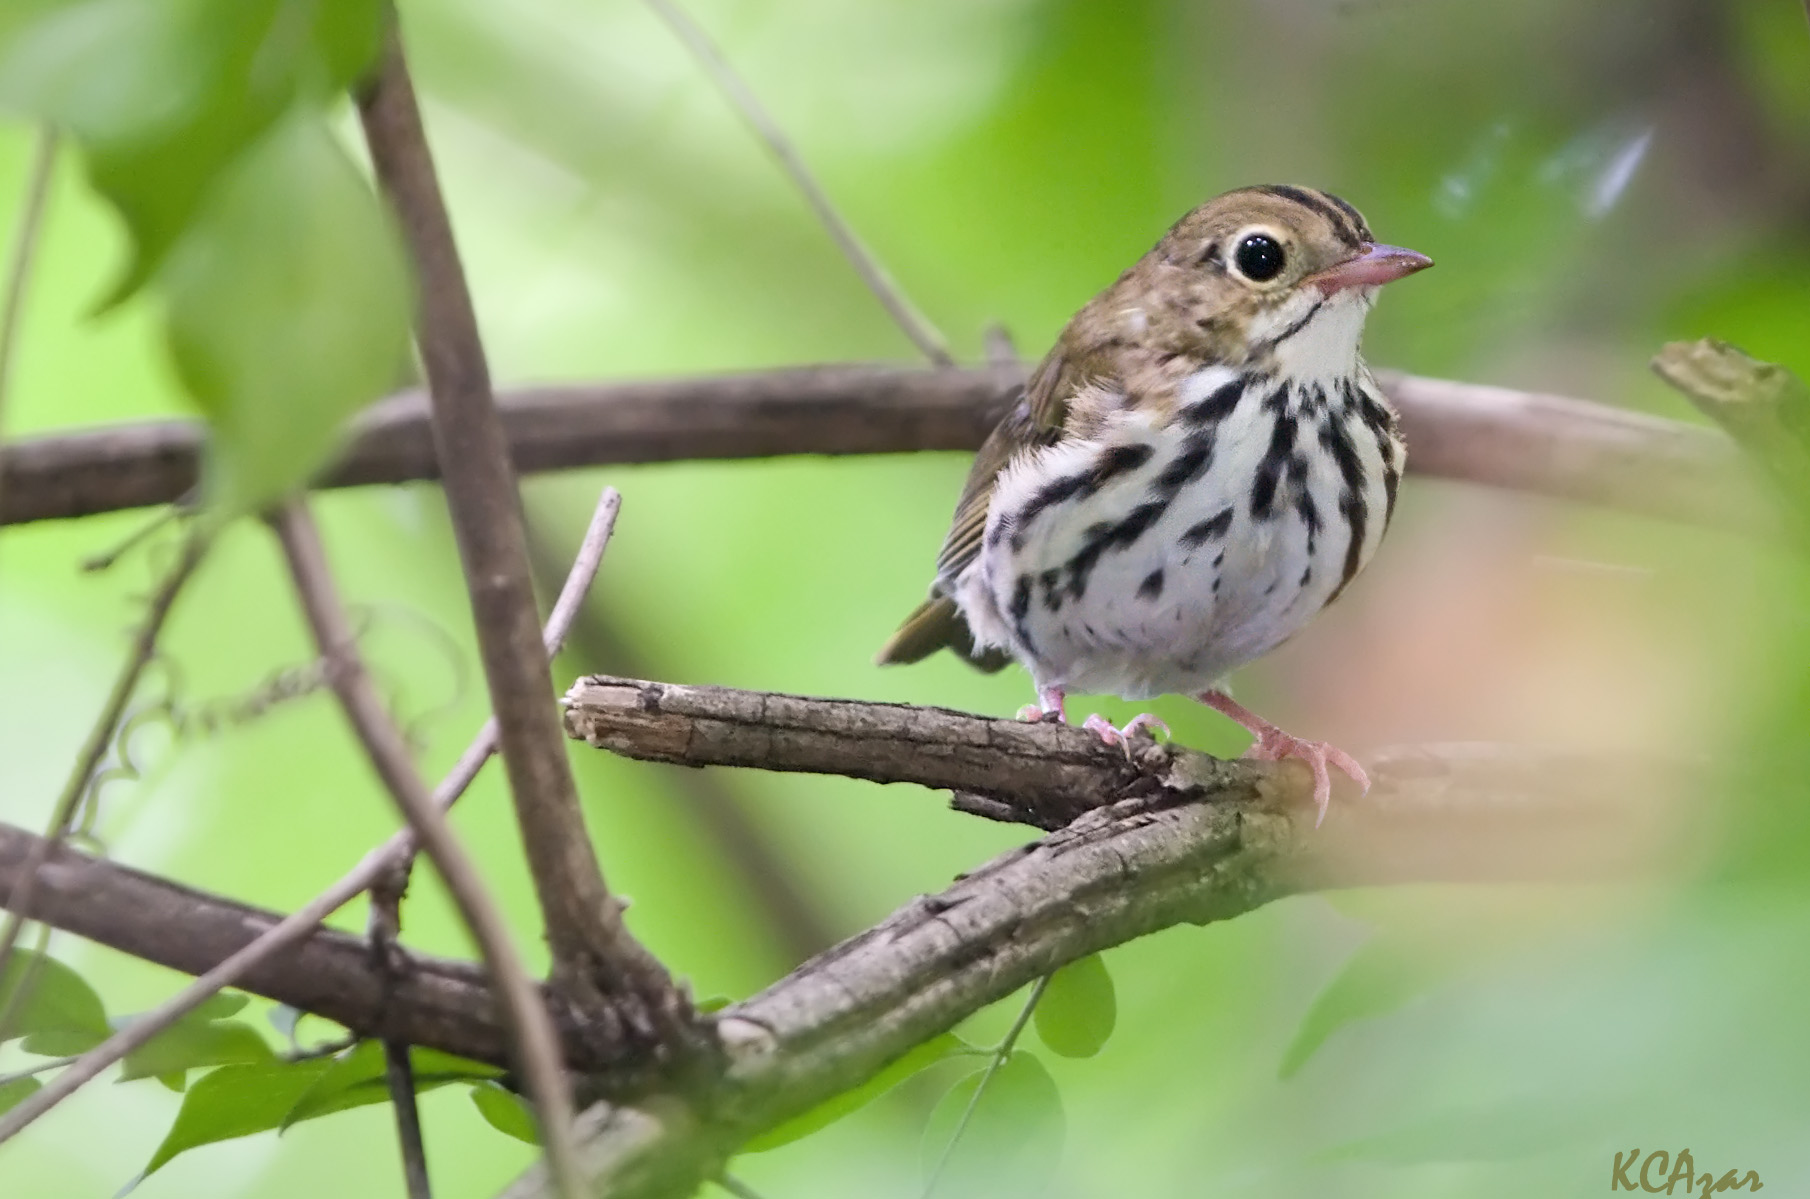 """- Ovenbird (Seiurus aurocapilla)Ovenbirds live in deciduous and mixed forests. They prefer to live near the understory, and build their oven-like nests on the forest floor. Their diet consists of insects, arachnids, and seeds. They weigh 0.6-1 oz. and have a wingspan of 7.5-10.2 in. The Ovenbirds' call says """"teacher, teacher, teacher, teacher, teach."""" They are protected on the US Migratory Bird list.Photo Credits: Kelly Colgan Azar"""